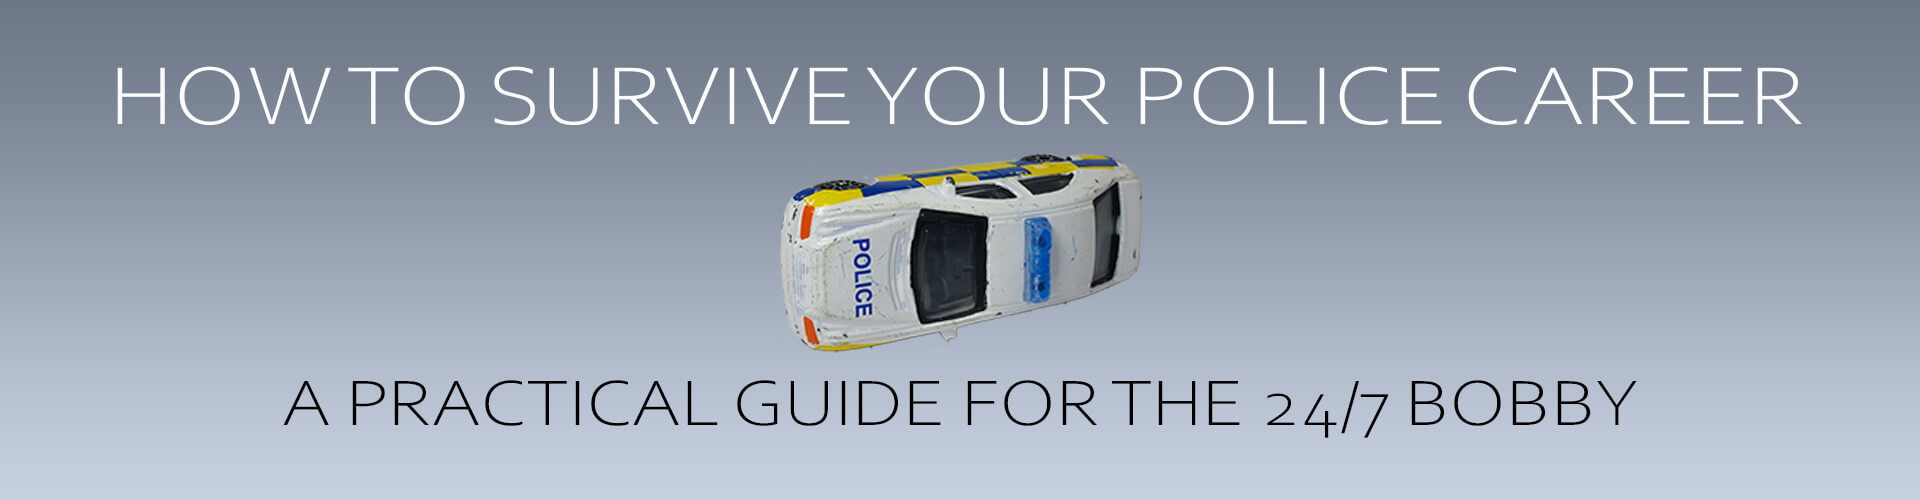 How To Survive Your Police Career